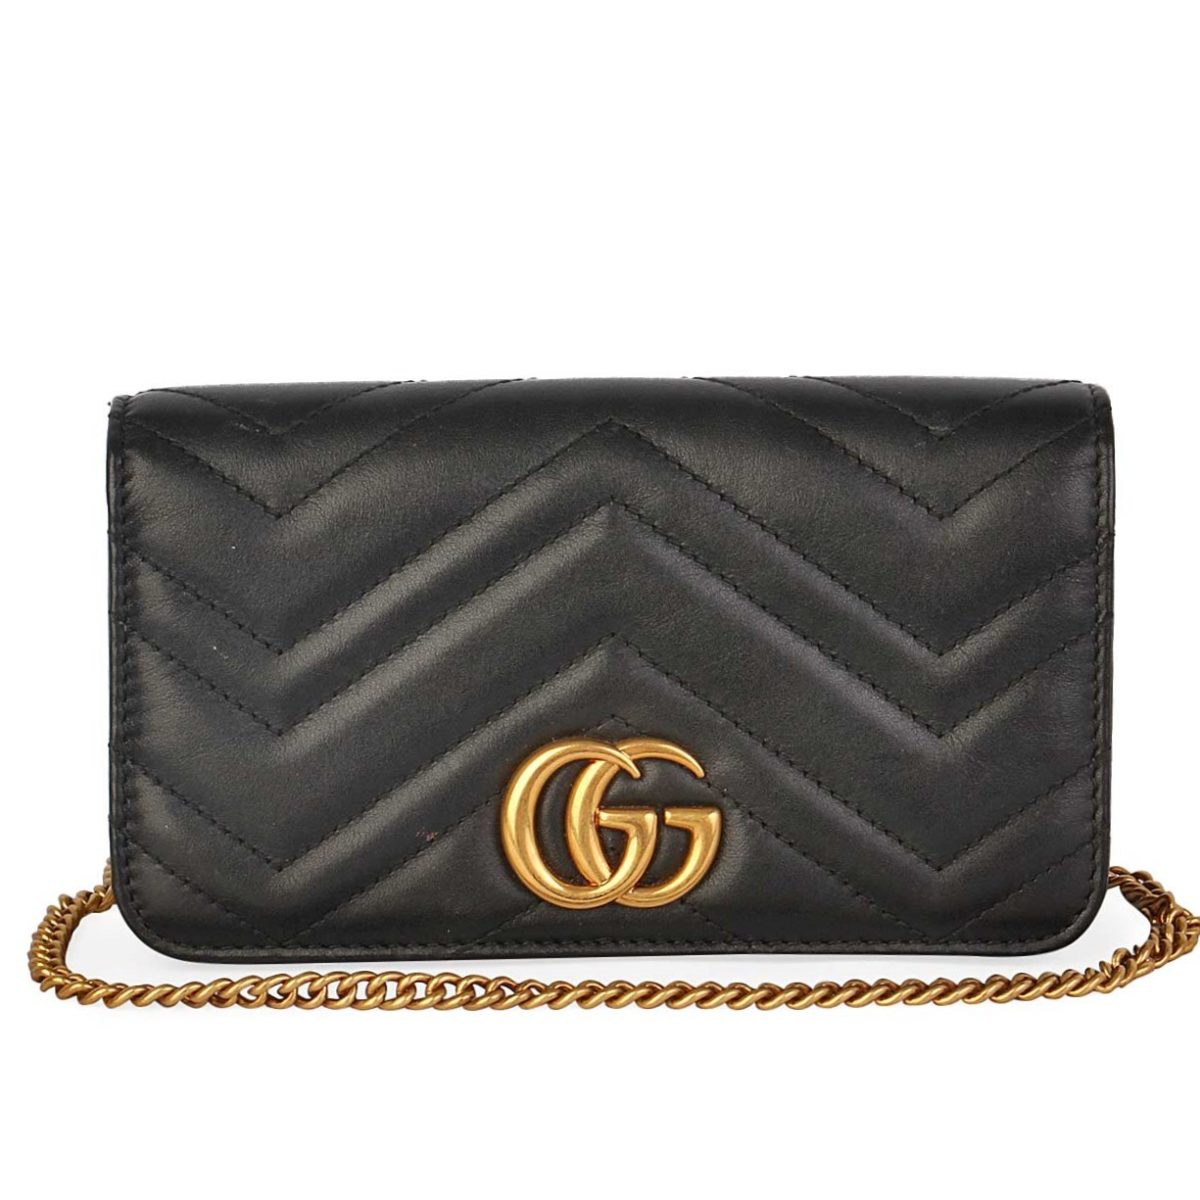 f5e984f9da8b GUCCI GG Marmont Matelassé Mini Crossbody Bag Black | Luxity